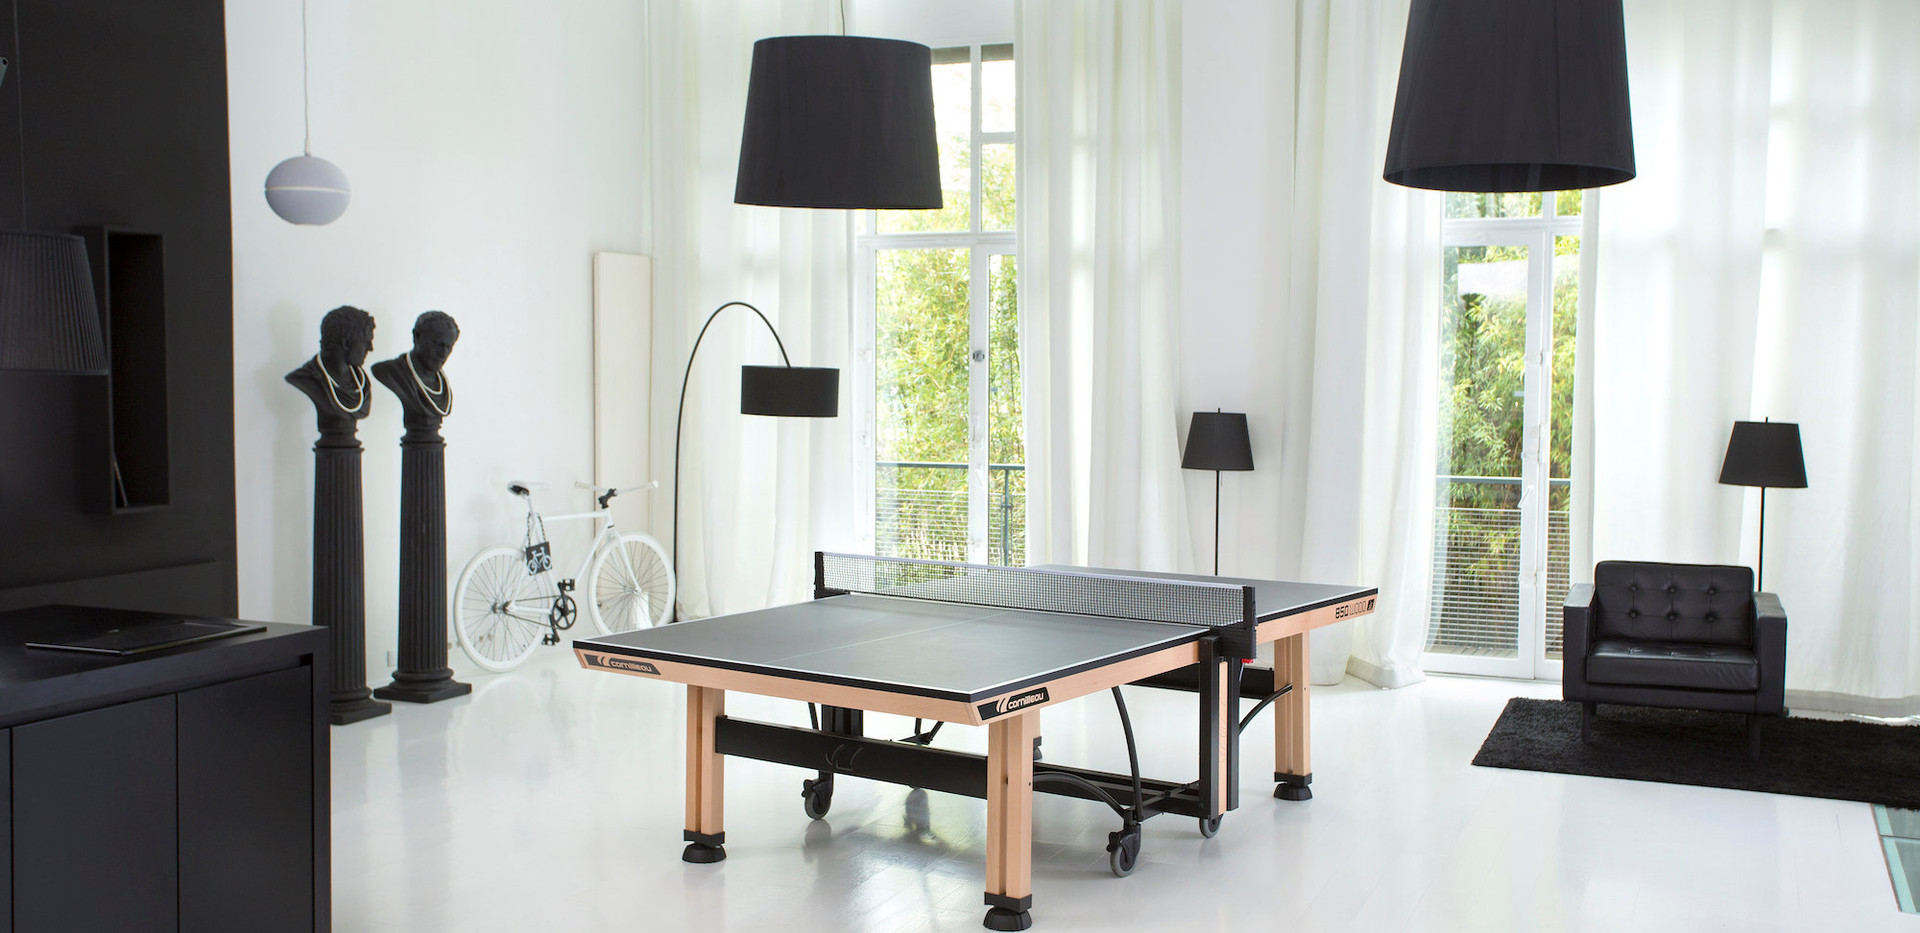 competition 850 wood ittf - at home.jpg